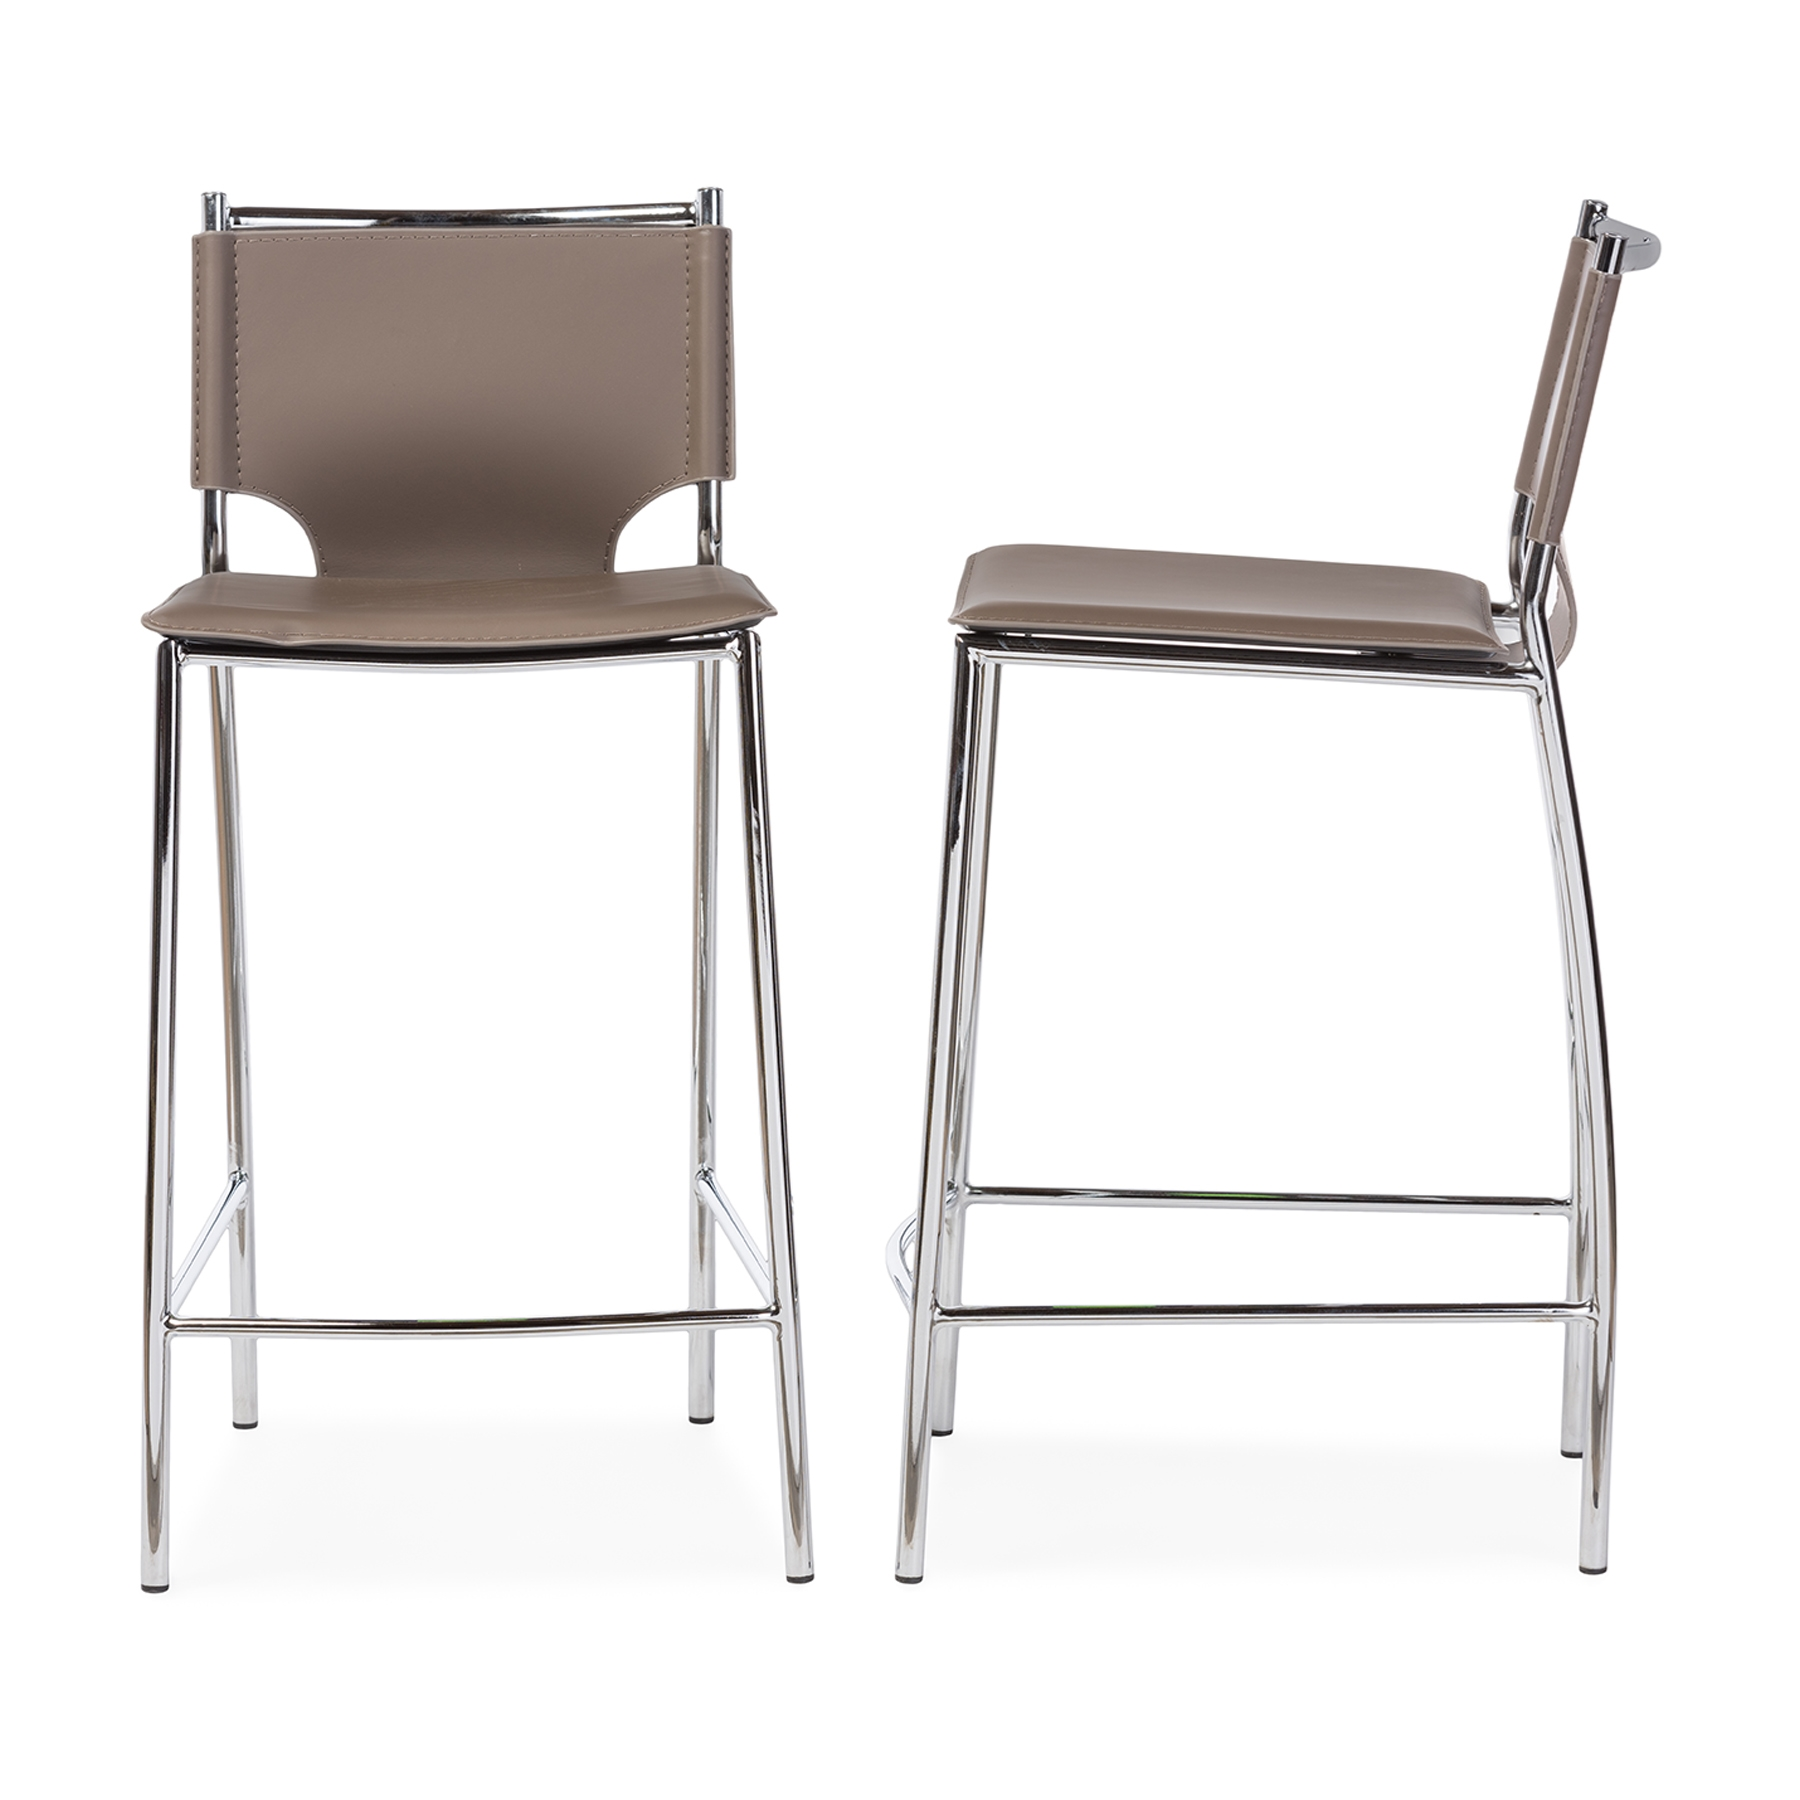 Baxton studio montclare modern and contemporary taupe bonded leather upholstered modern counter stool